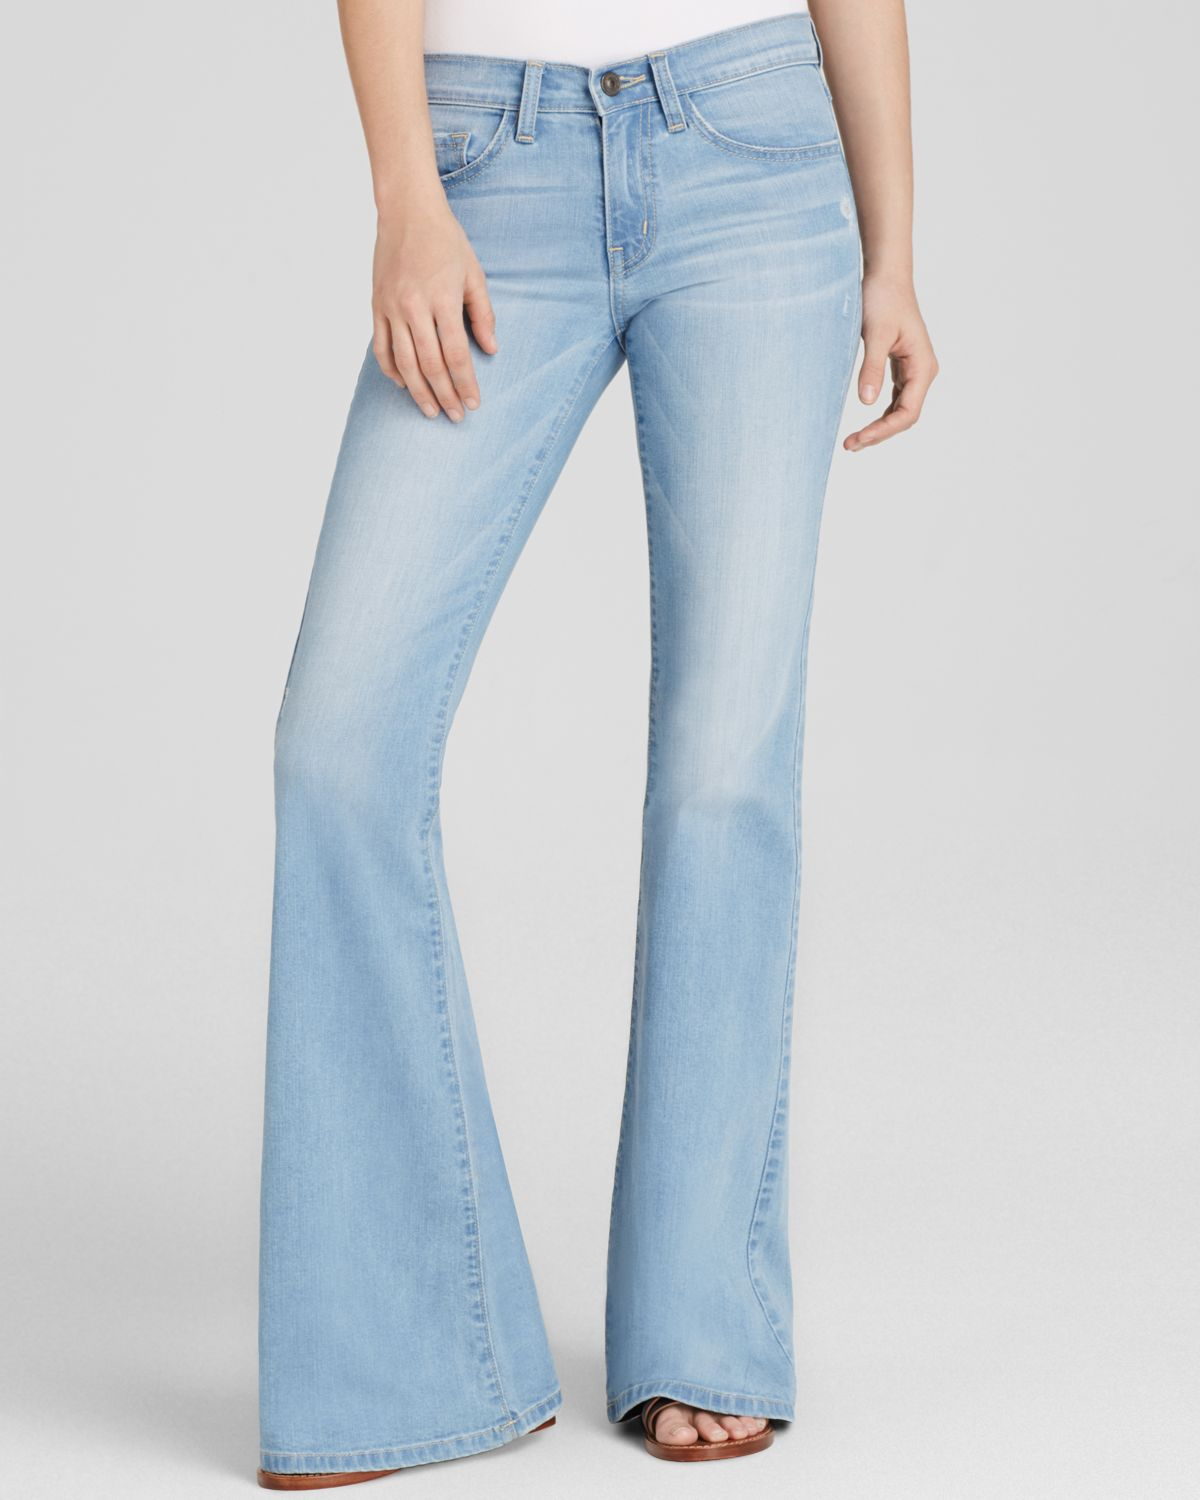 These high-waisted flared jeans feature a trendy raw hem. Shop rue21!